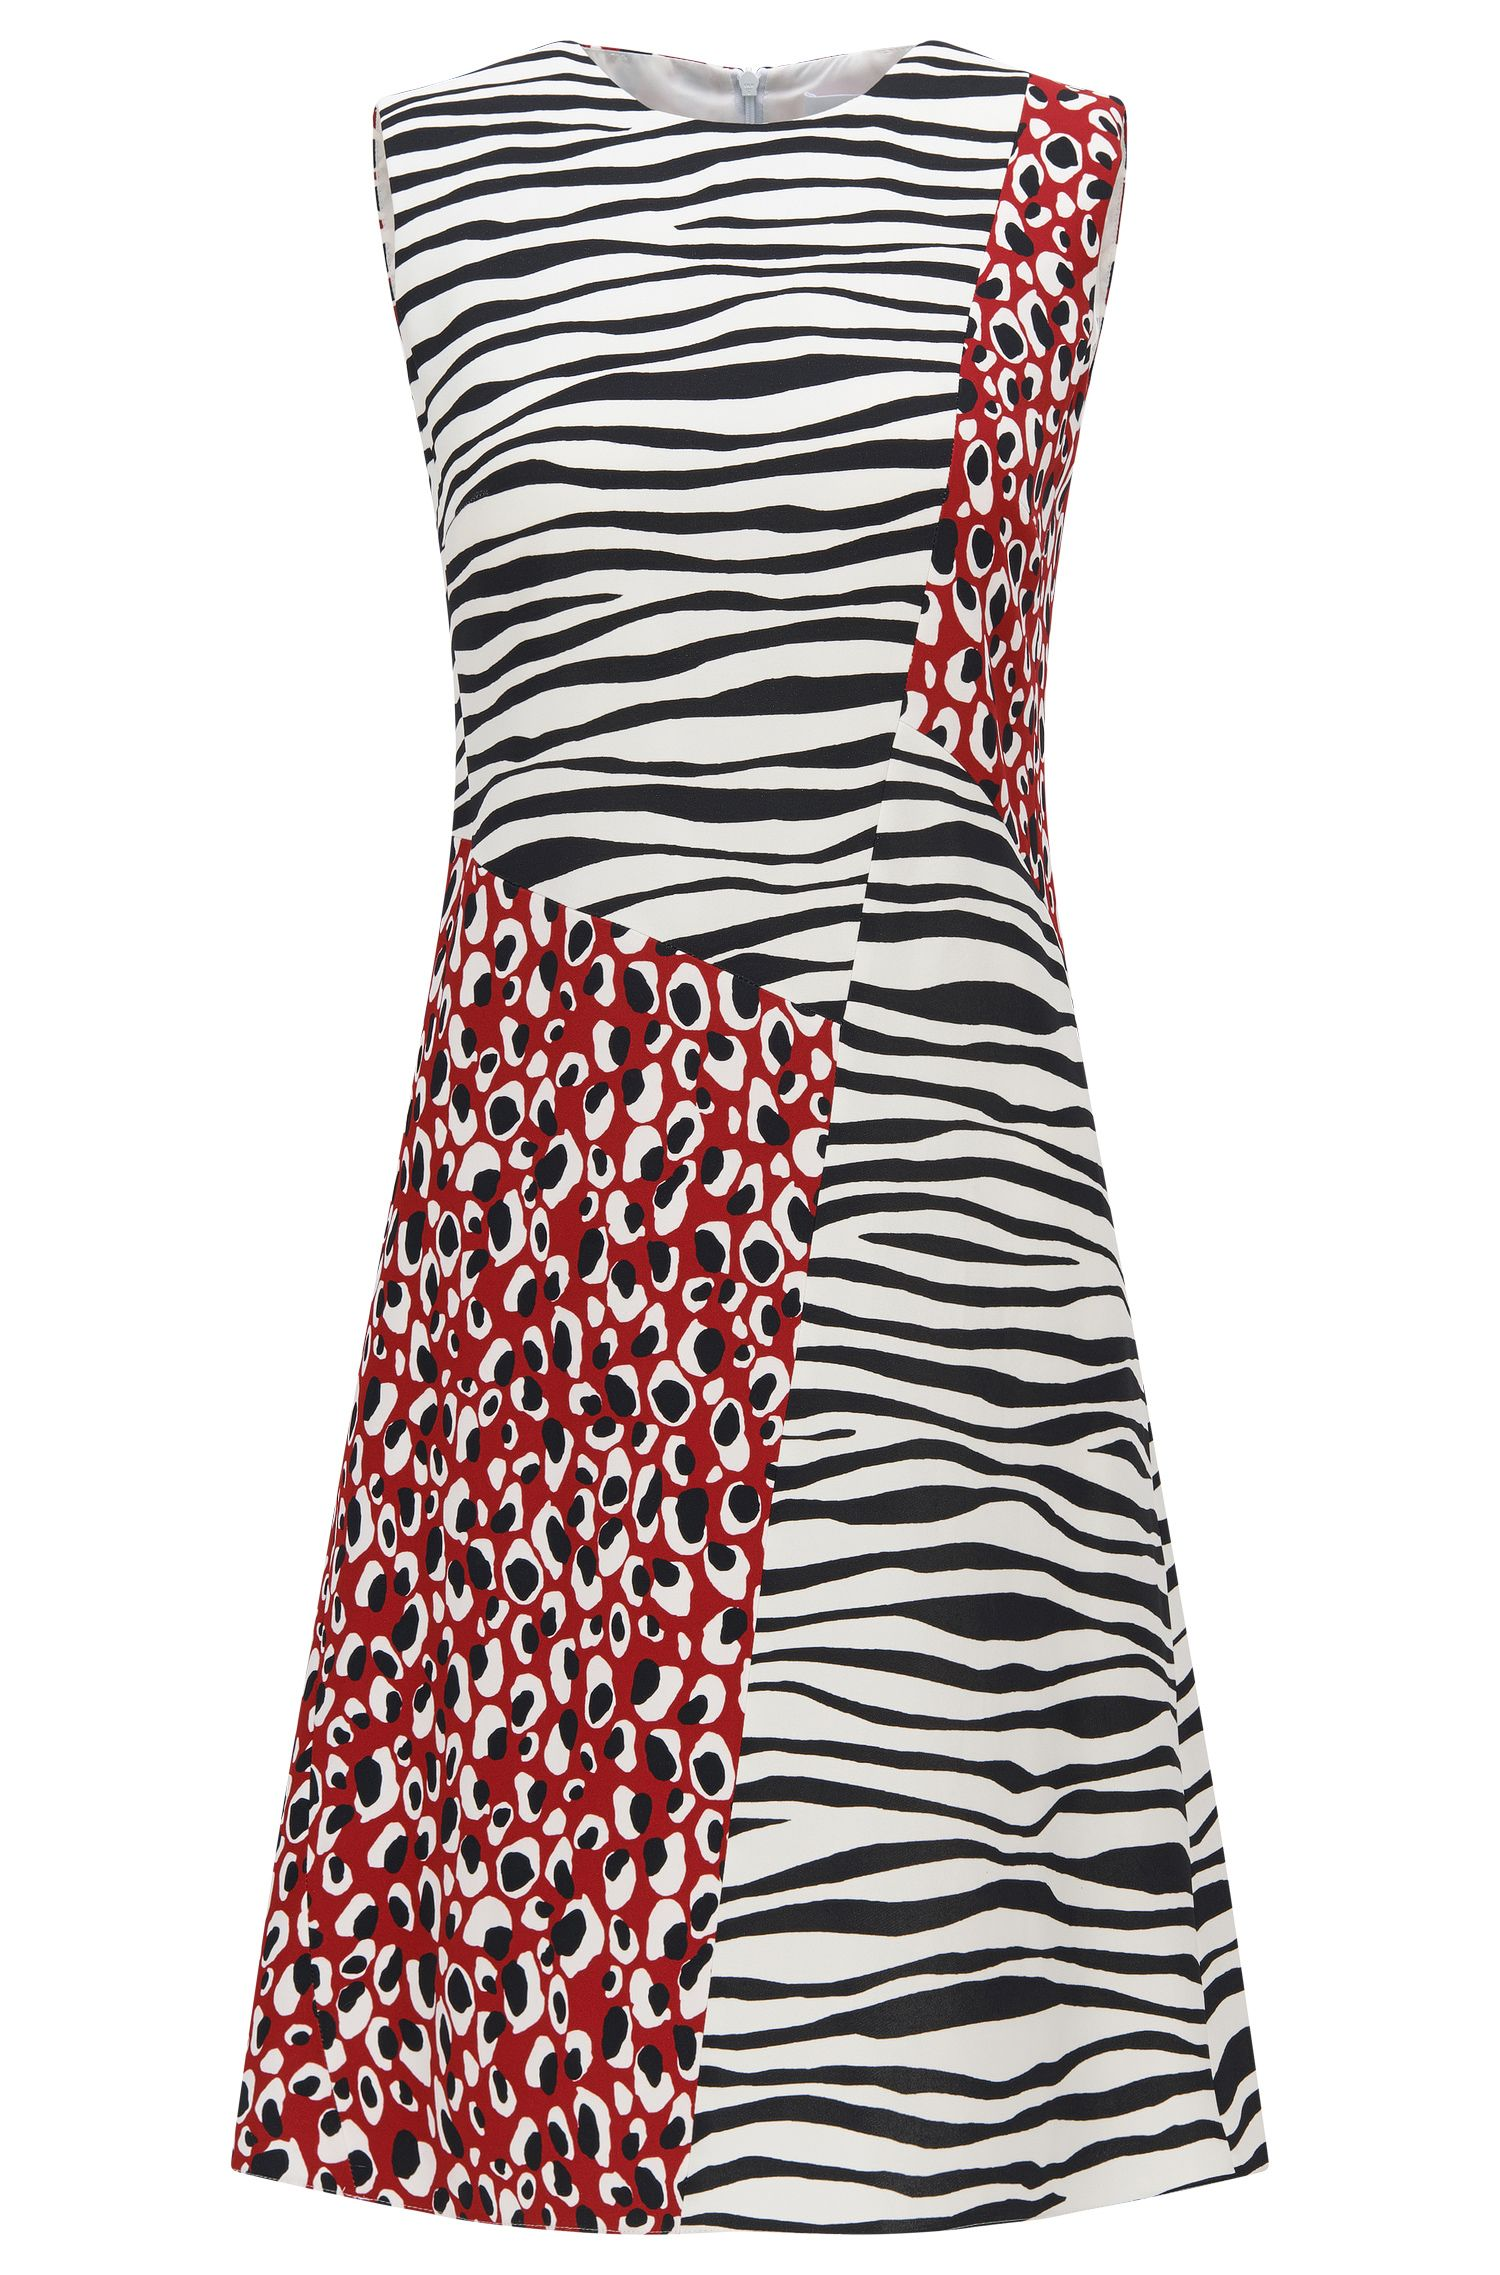 Animal-Print Stretch Dress | Diseba, Patterned